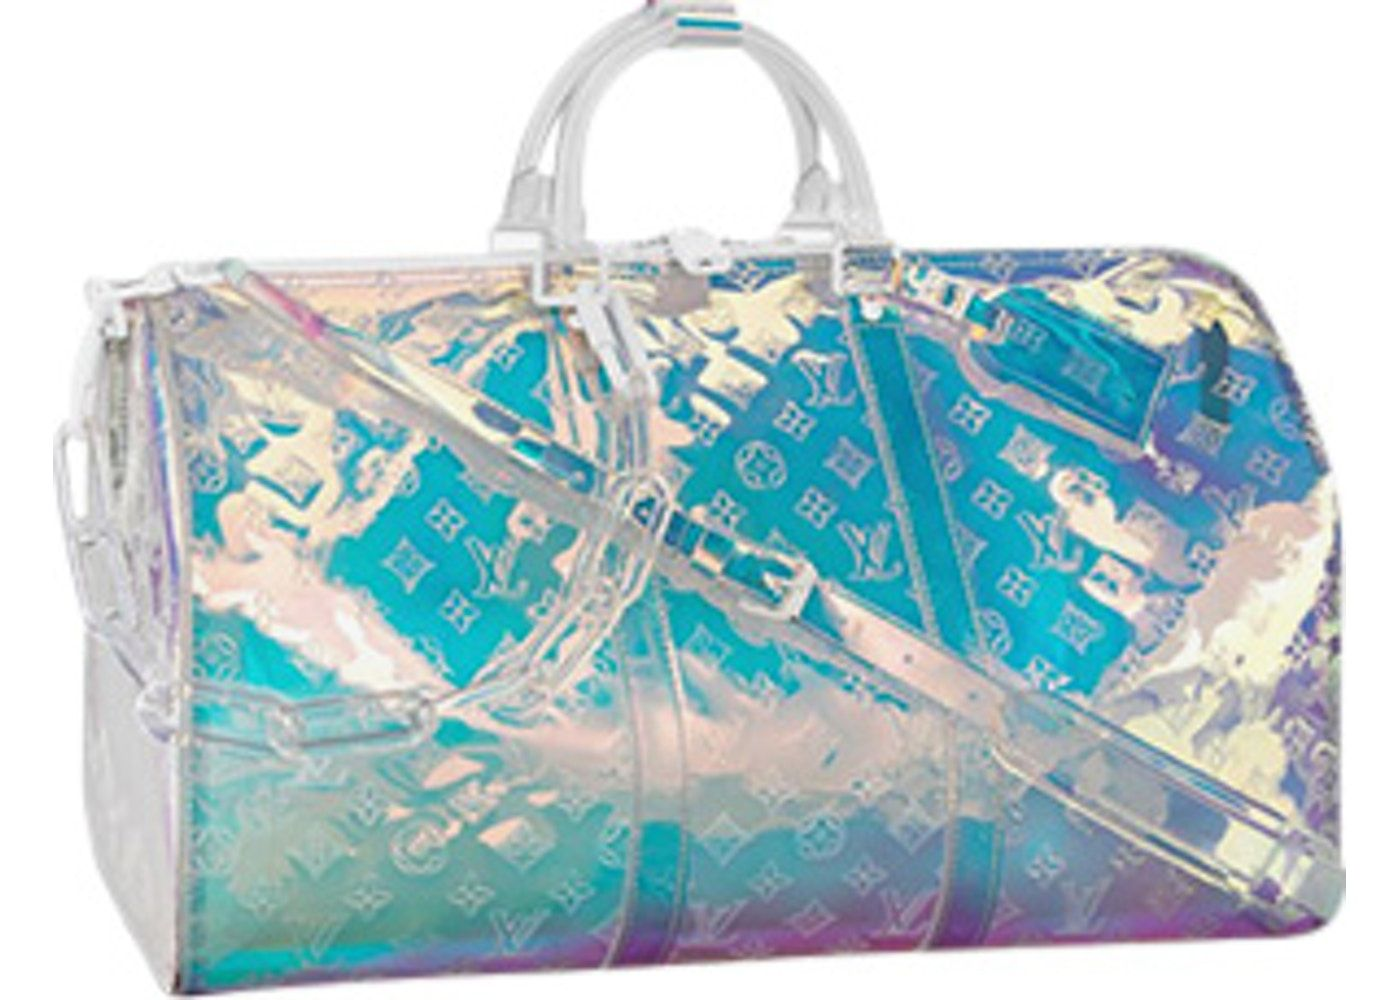 Louis Vuitton Keepall Bandouliere Monogram 50 Prism In 2020